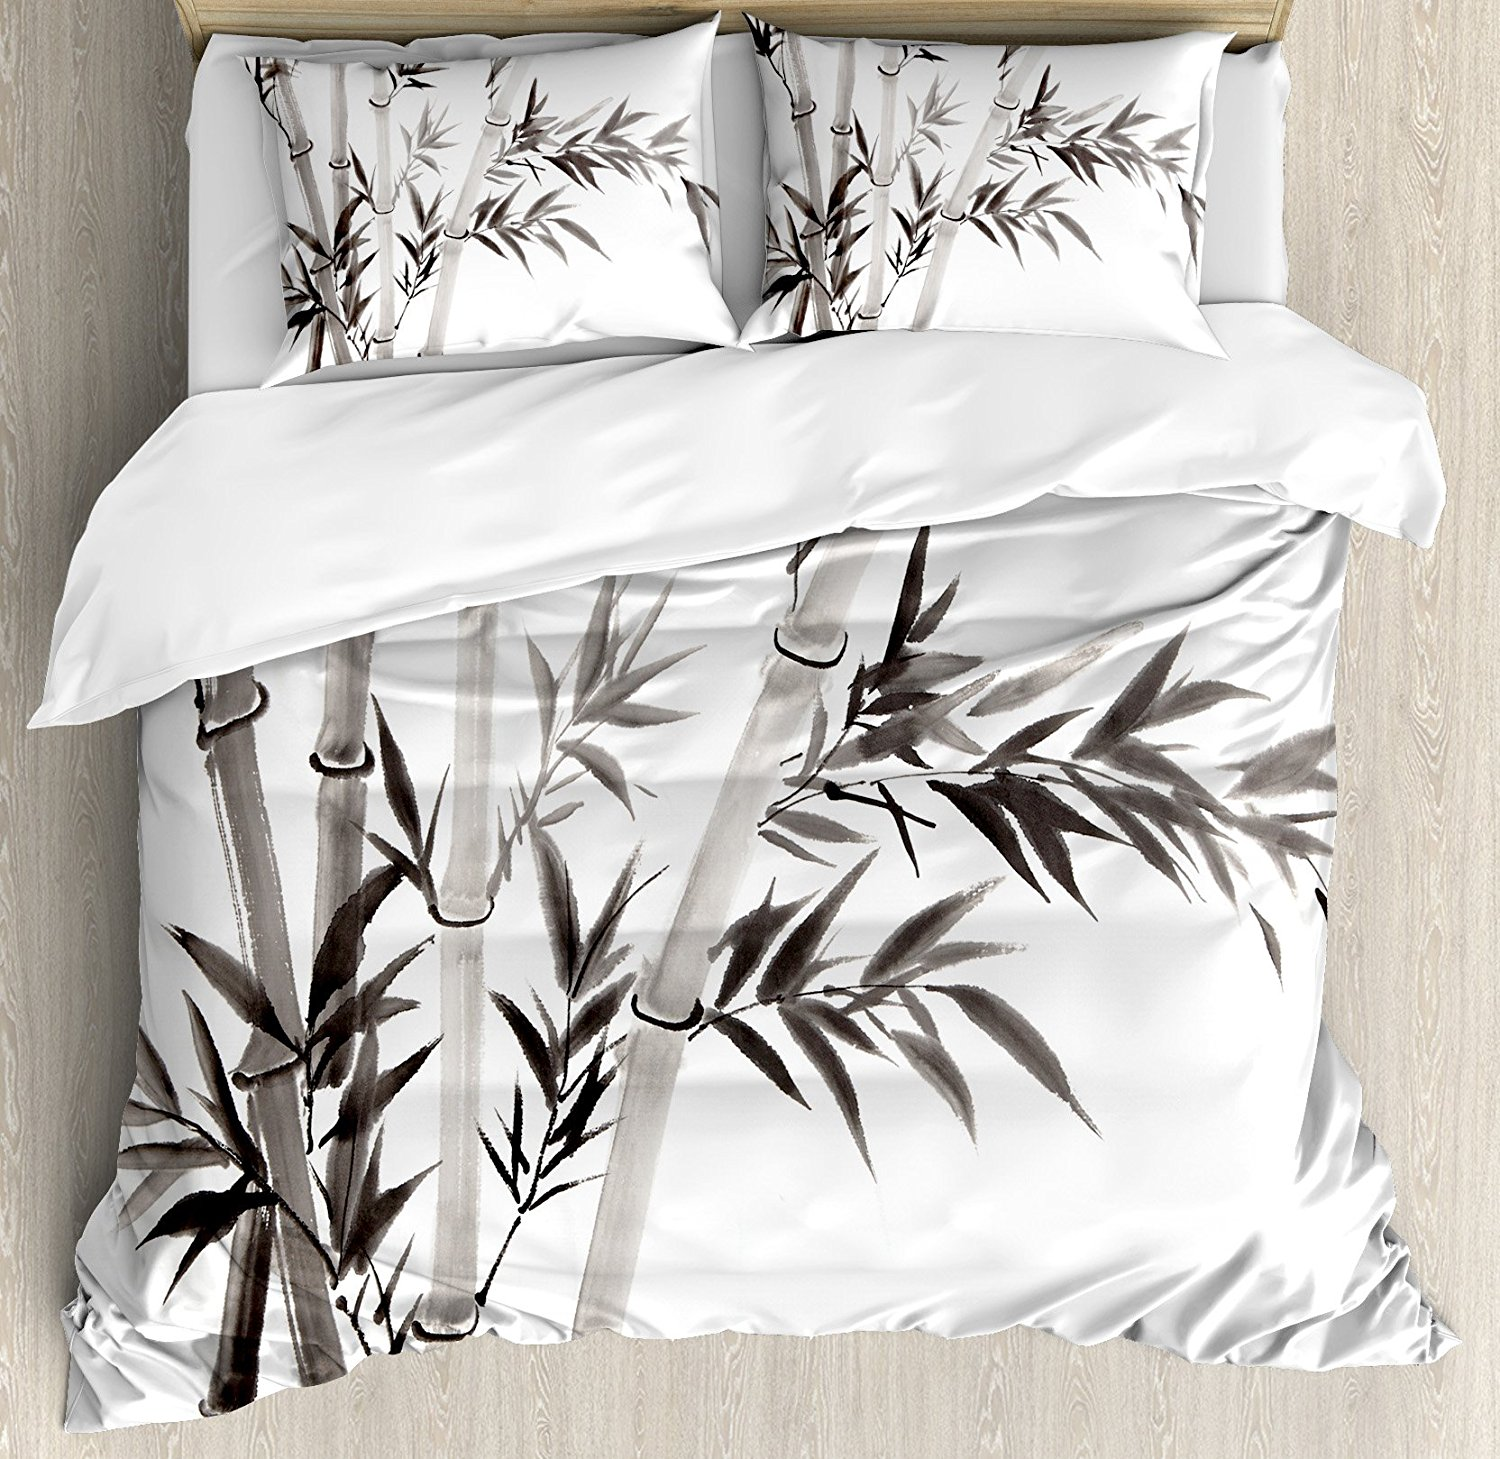 bamboo house decor duvet cover set traditional bamboo leaves meaning wisdom growth renewal. Black Bedroom Furniture Sets. Home Design Ideas